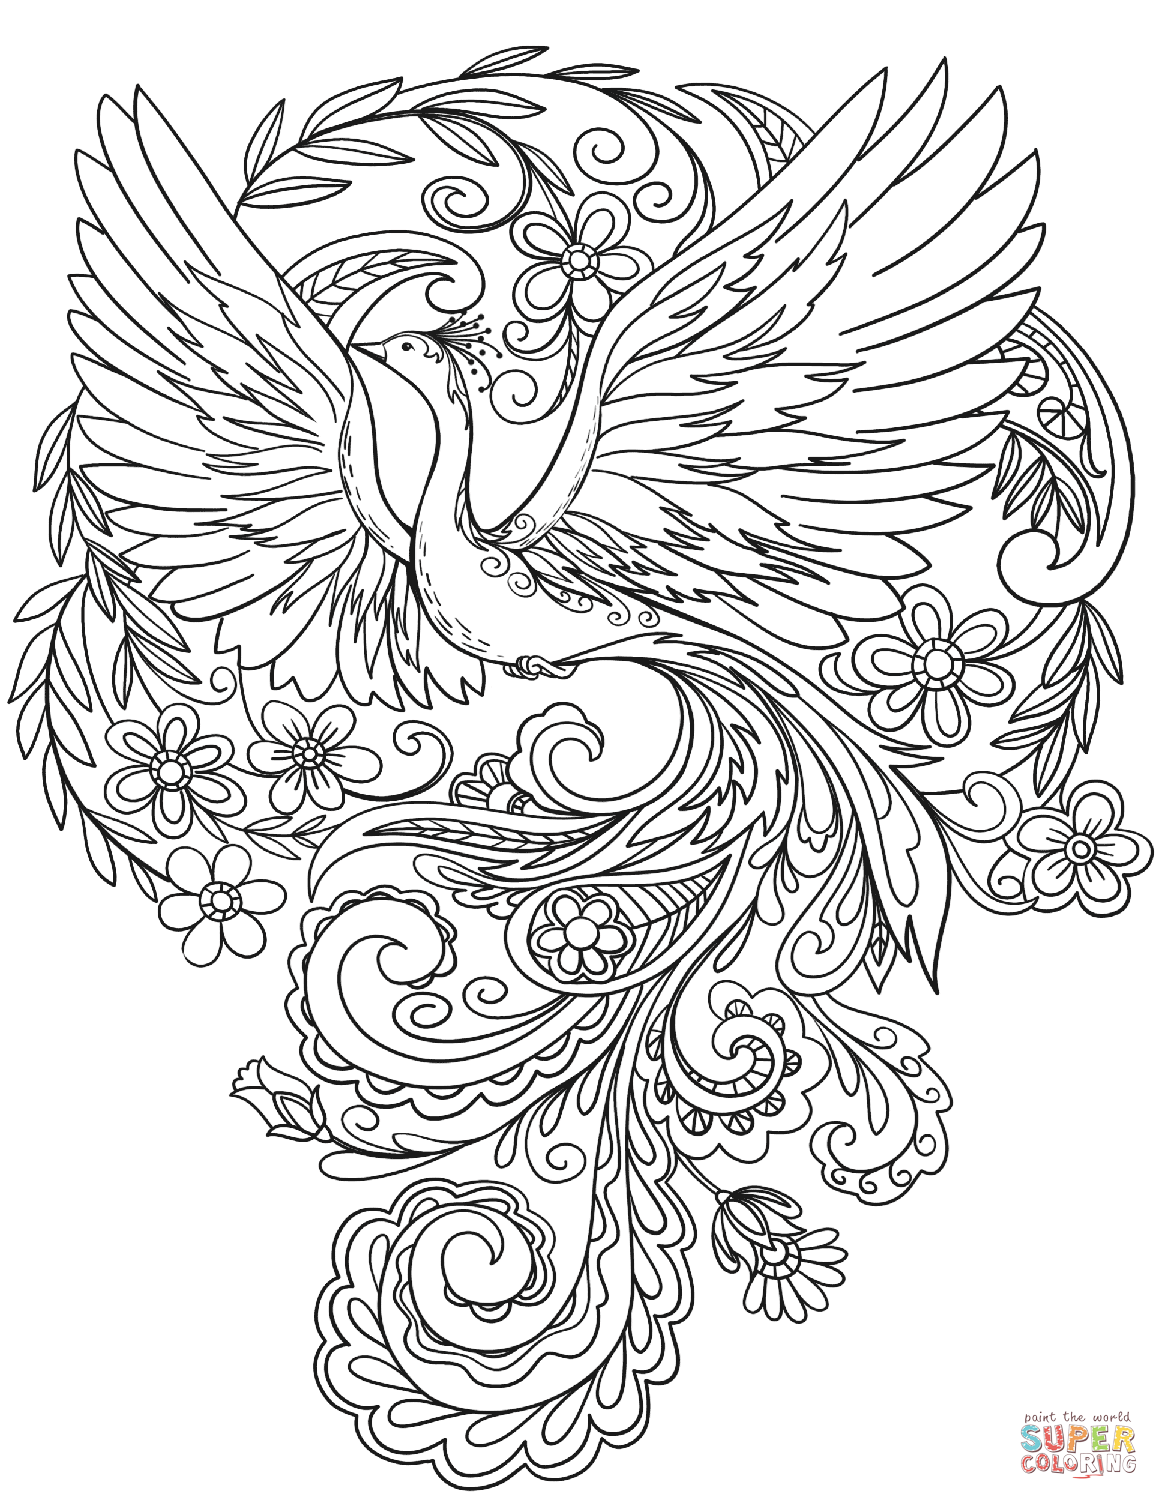 peacock coloring pages peacock coloring pages to download and print for free coloring peacock pages